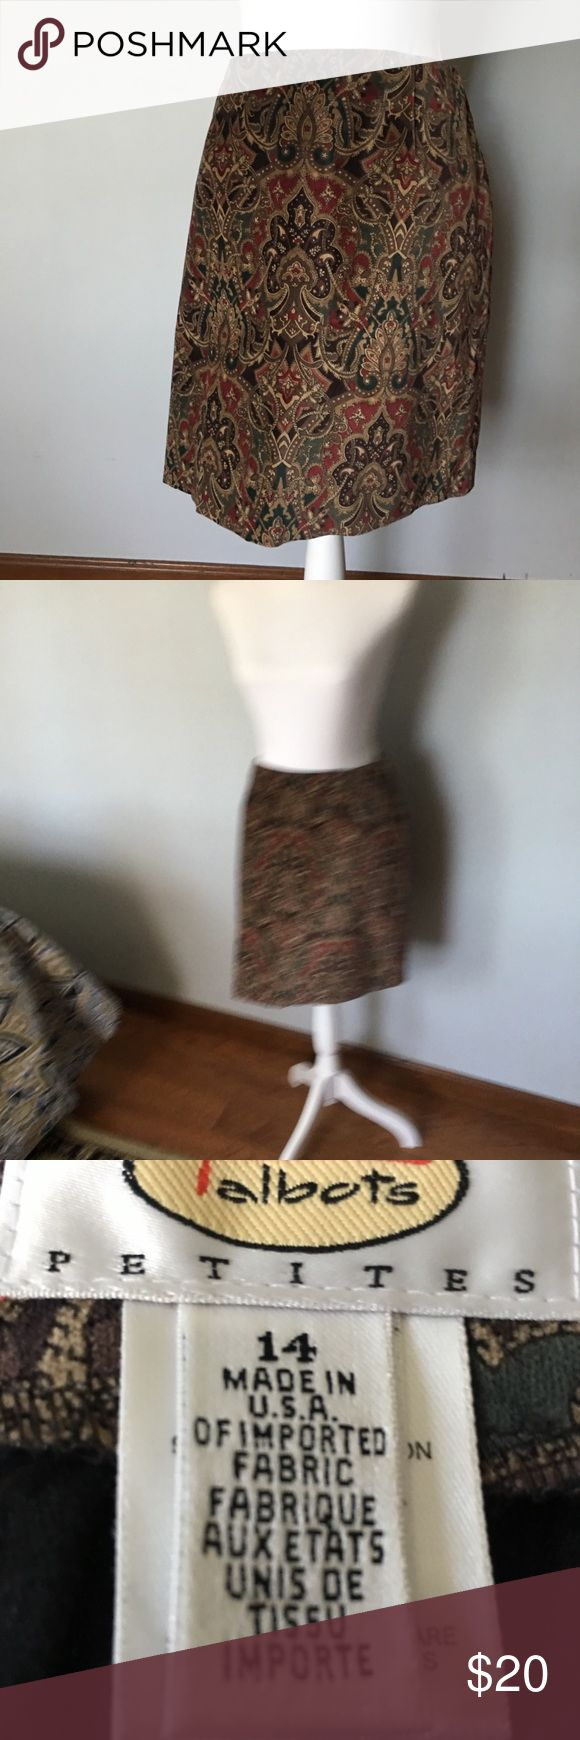 Talbots NWOT multi colored skirt A plush velveteen multi color Talbots skirt. Back zipper, 97%cotton, 3%spandex. The fabric has a nice give which makes for a very comfortable fit. NWOT Talbots Skirts Mini